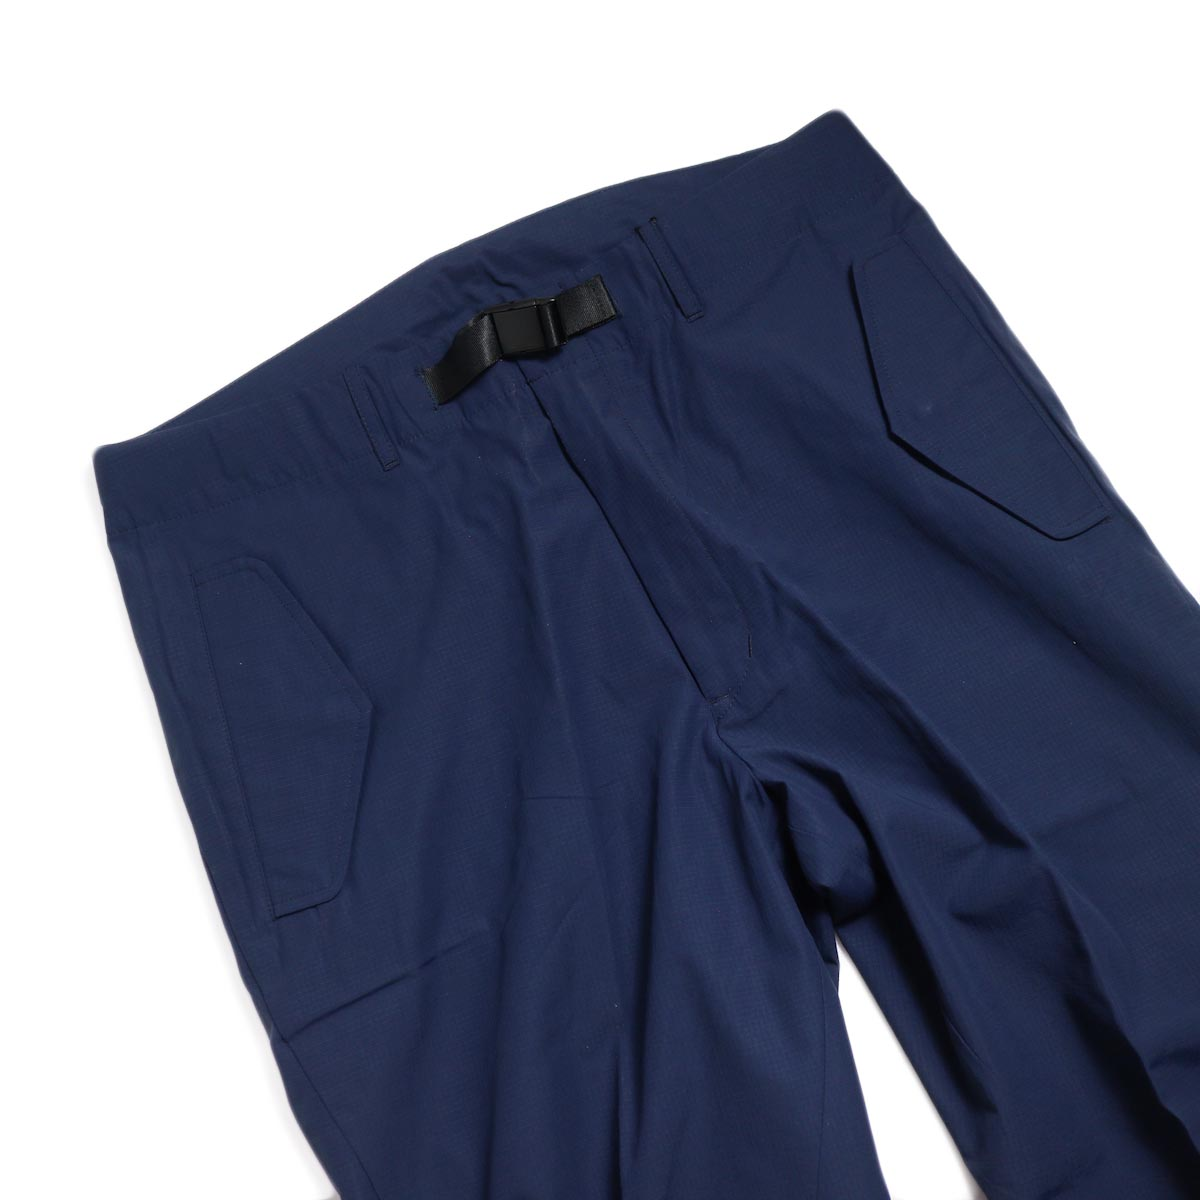 DESCENTE ddd / UNIFIT PANTS -NAVY ウエスト